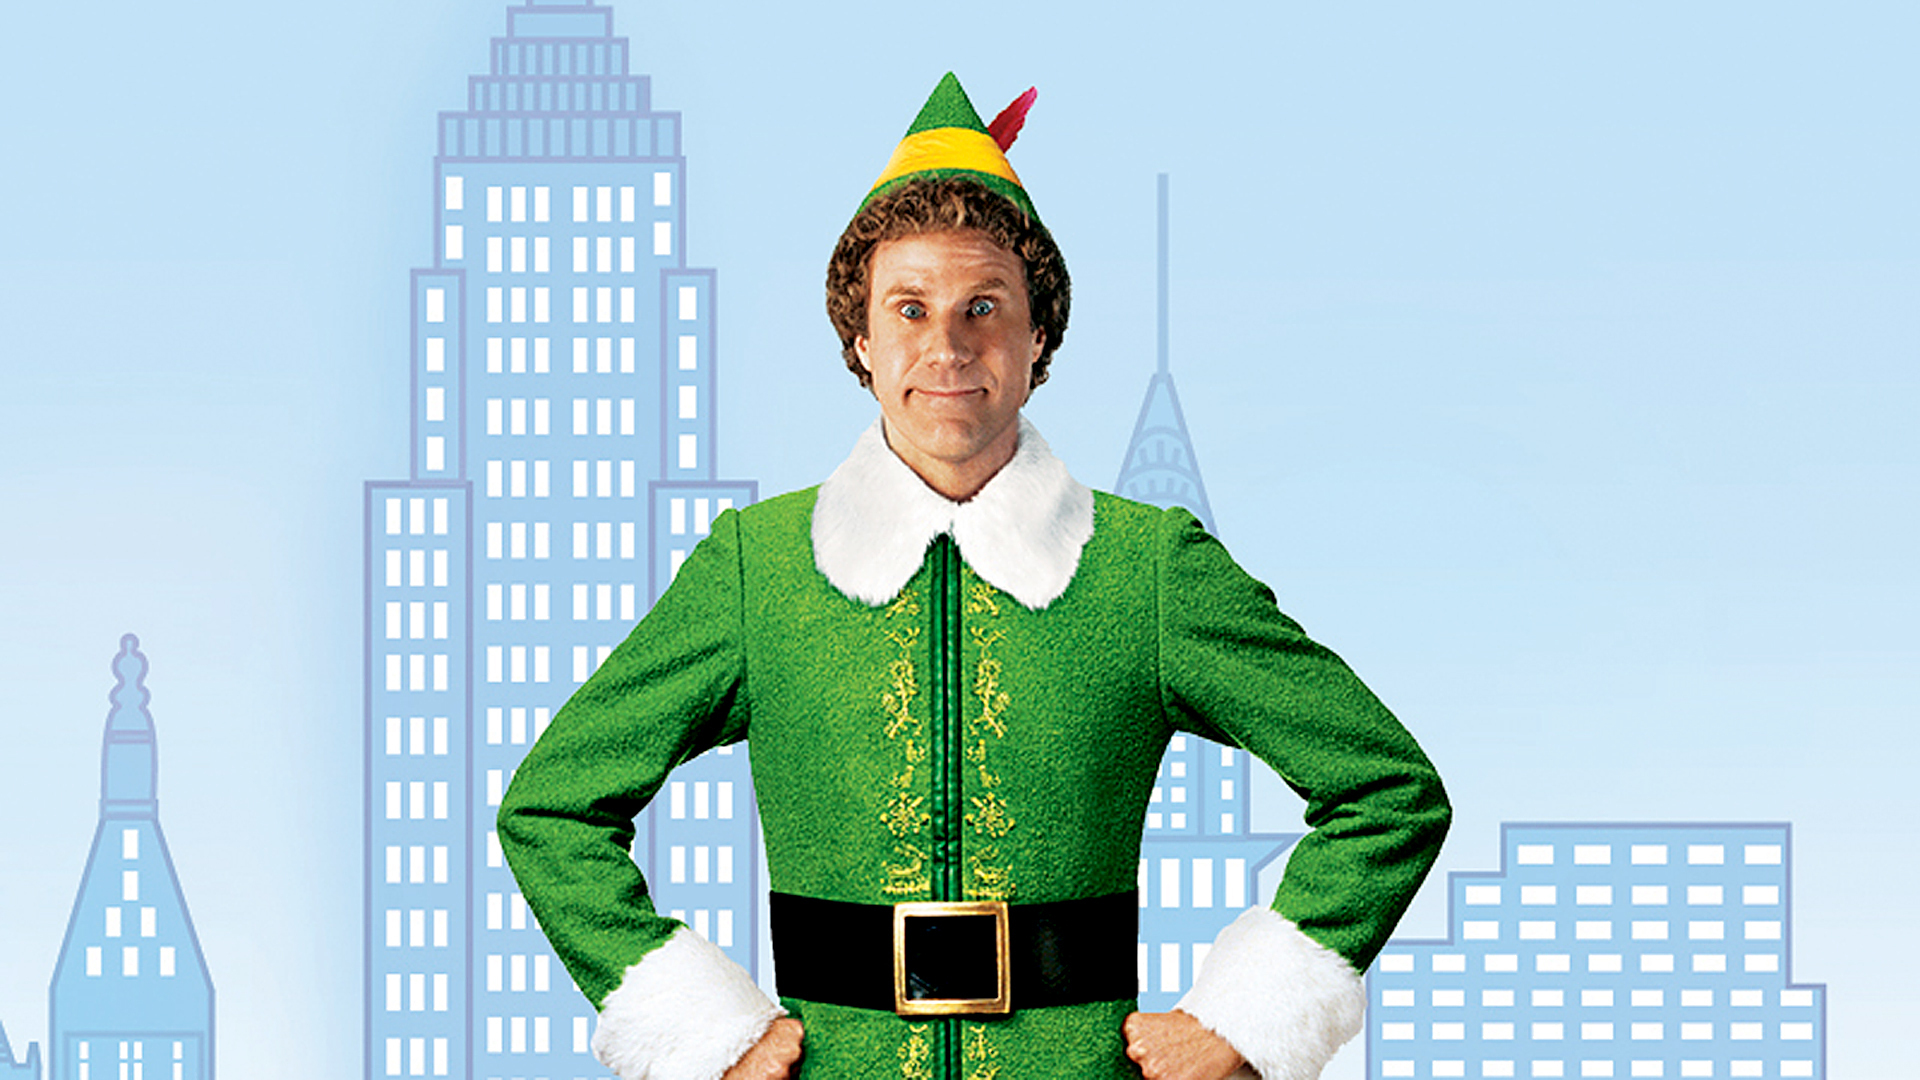 Elf Christmas Movie